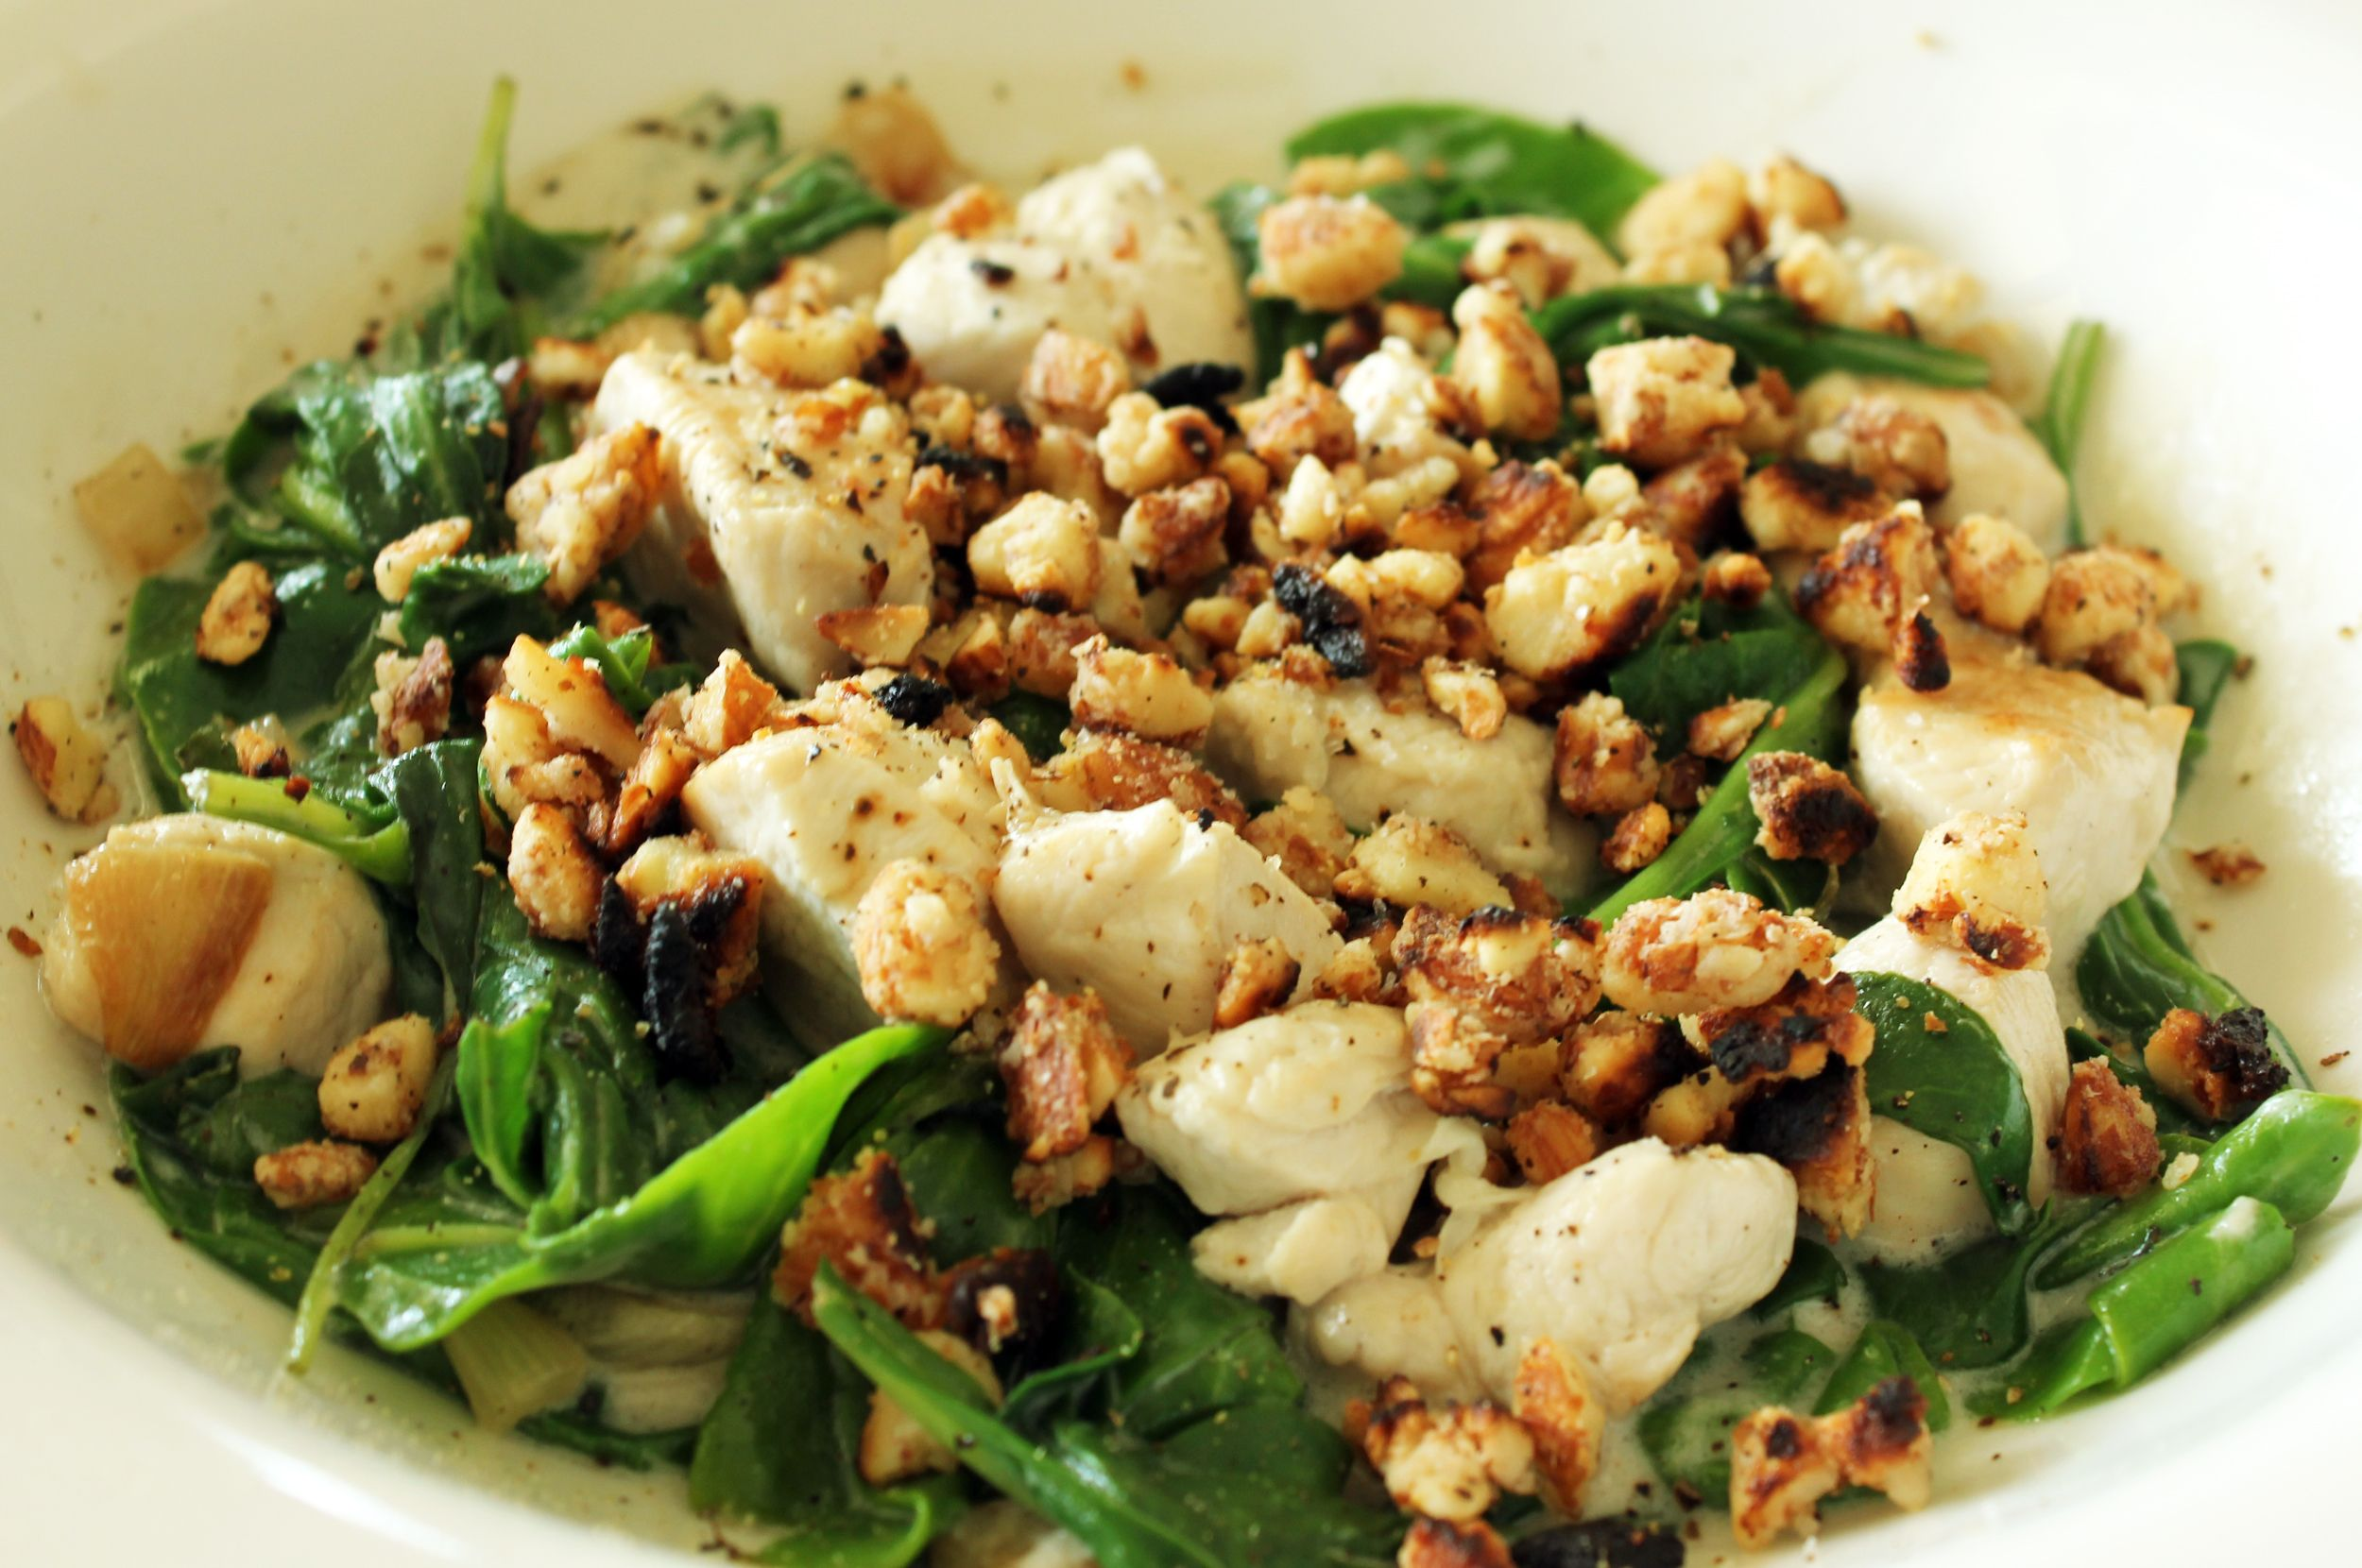 Coconut Chicken With Spinach The Candida Diet Recipe Candida Recipes Candida Diet Recipes Candida Diet